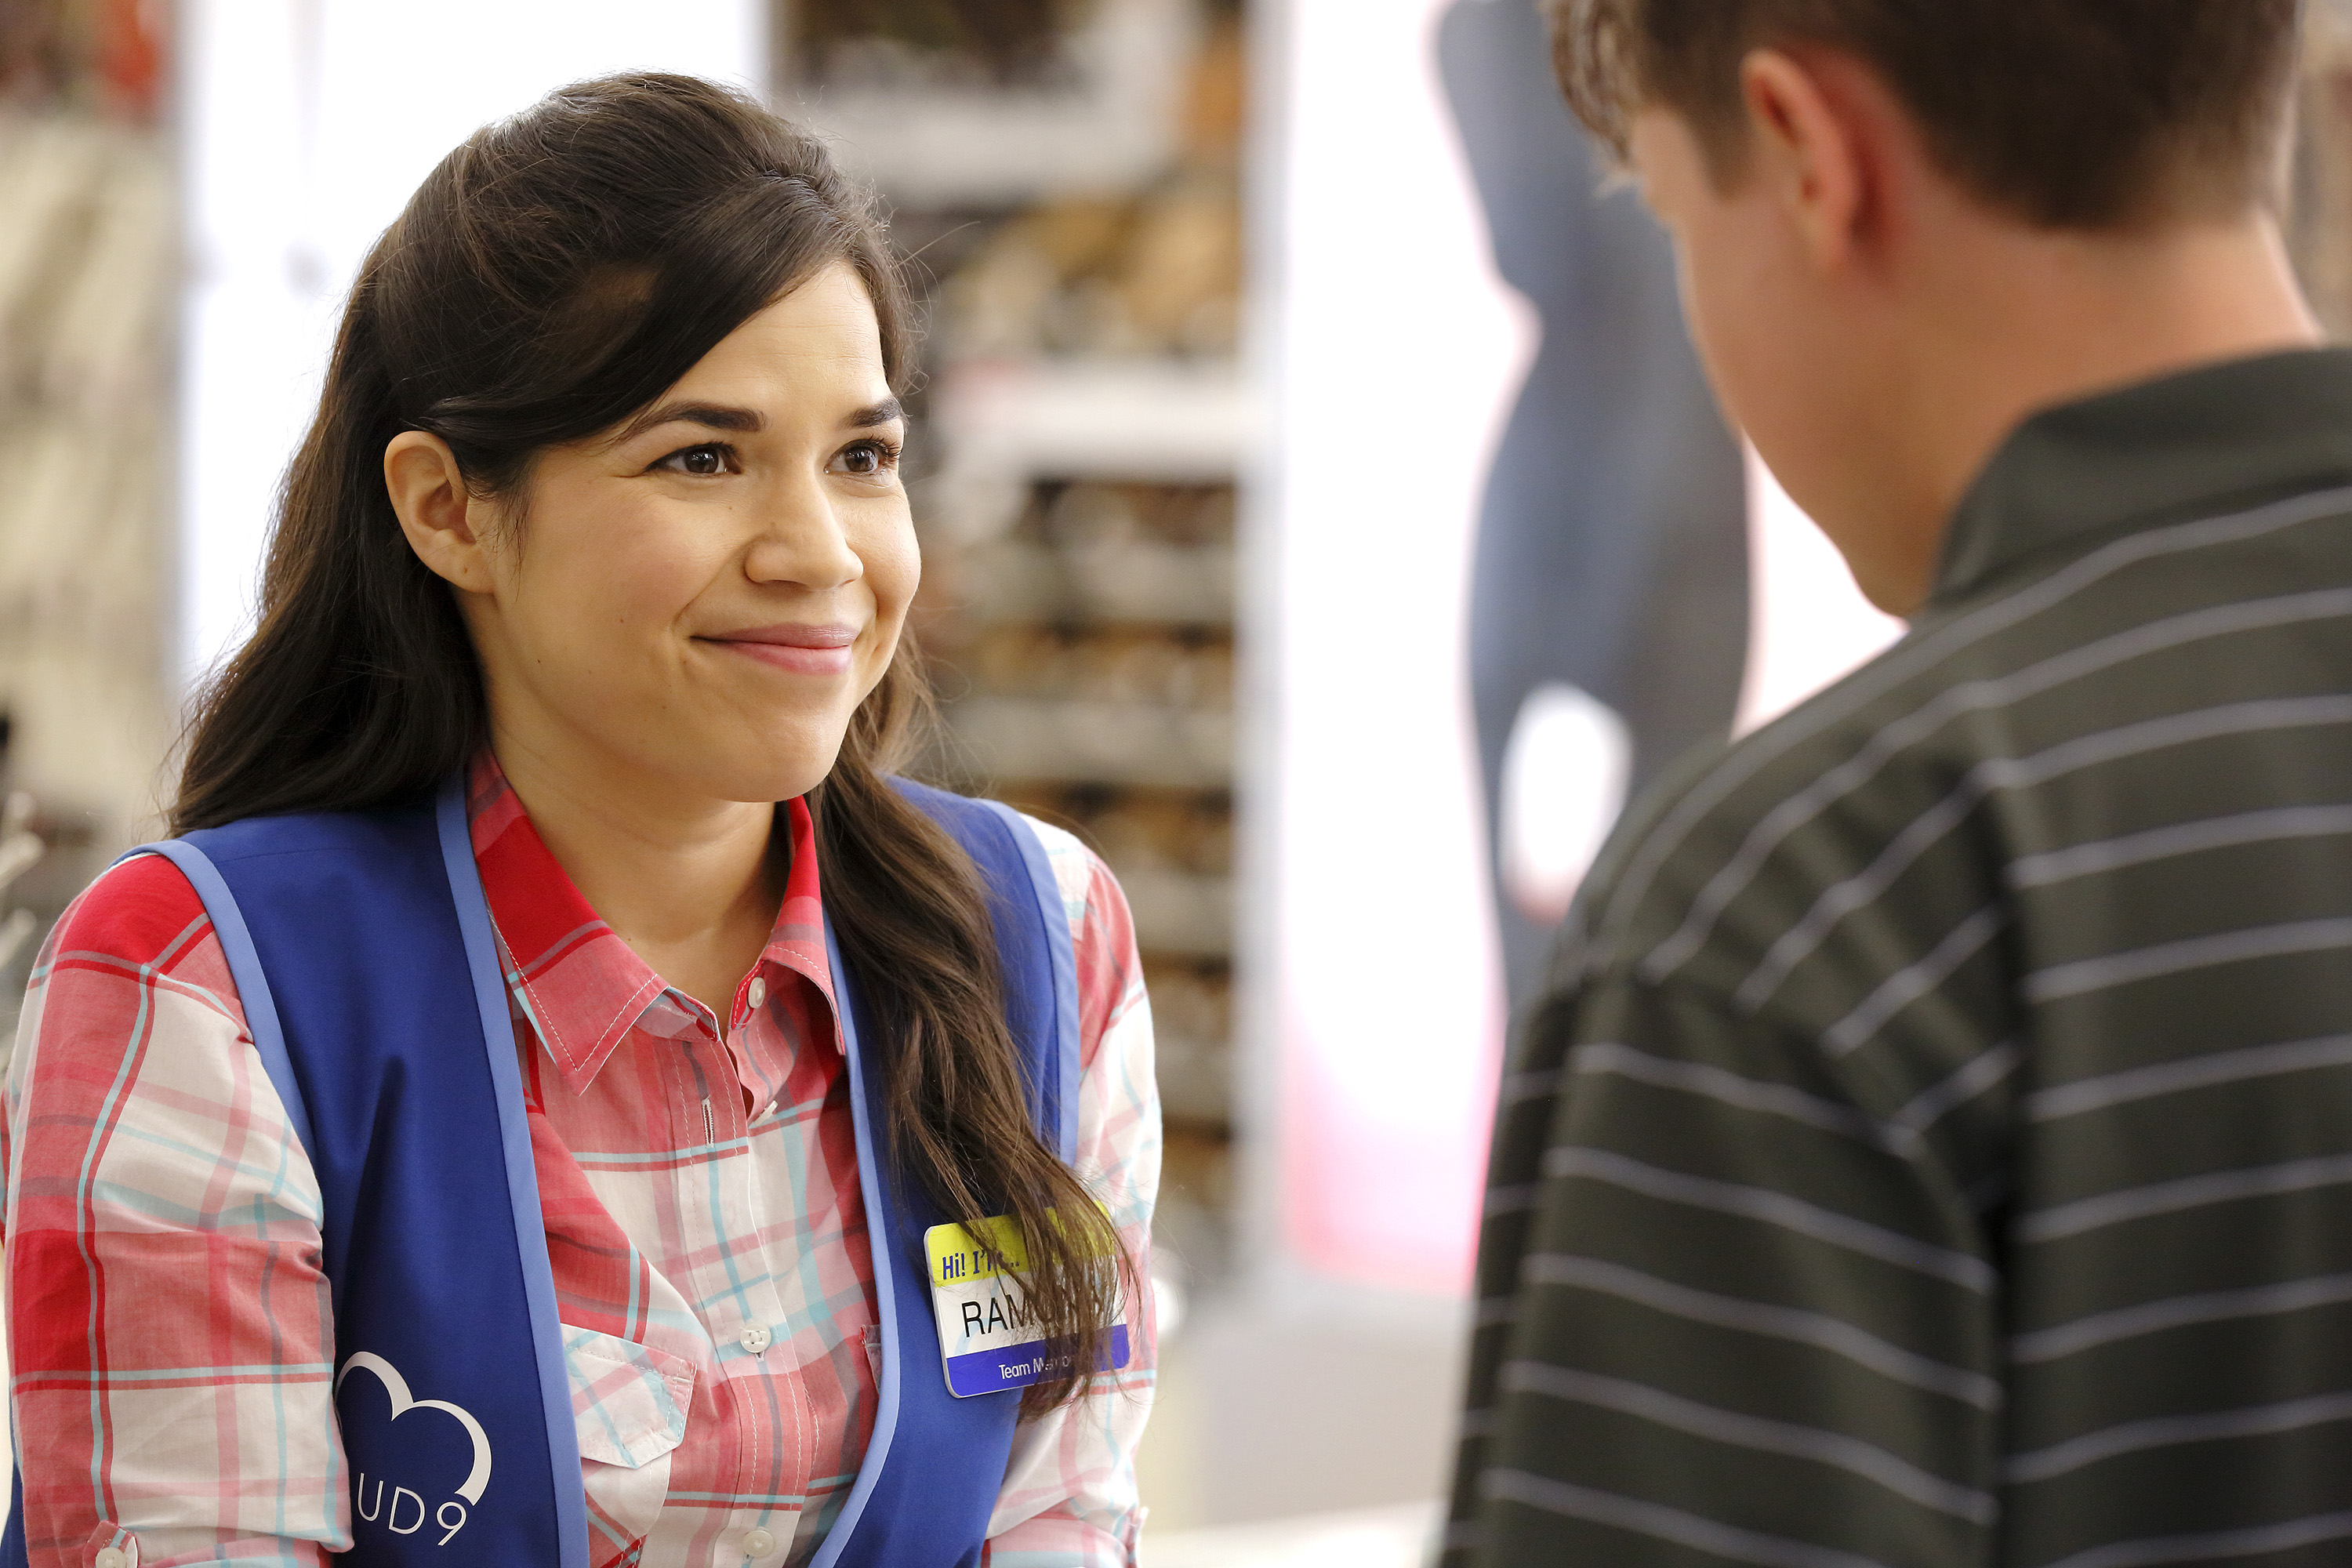 America Ferrera leaving 'Superstore' in surprise move